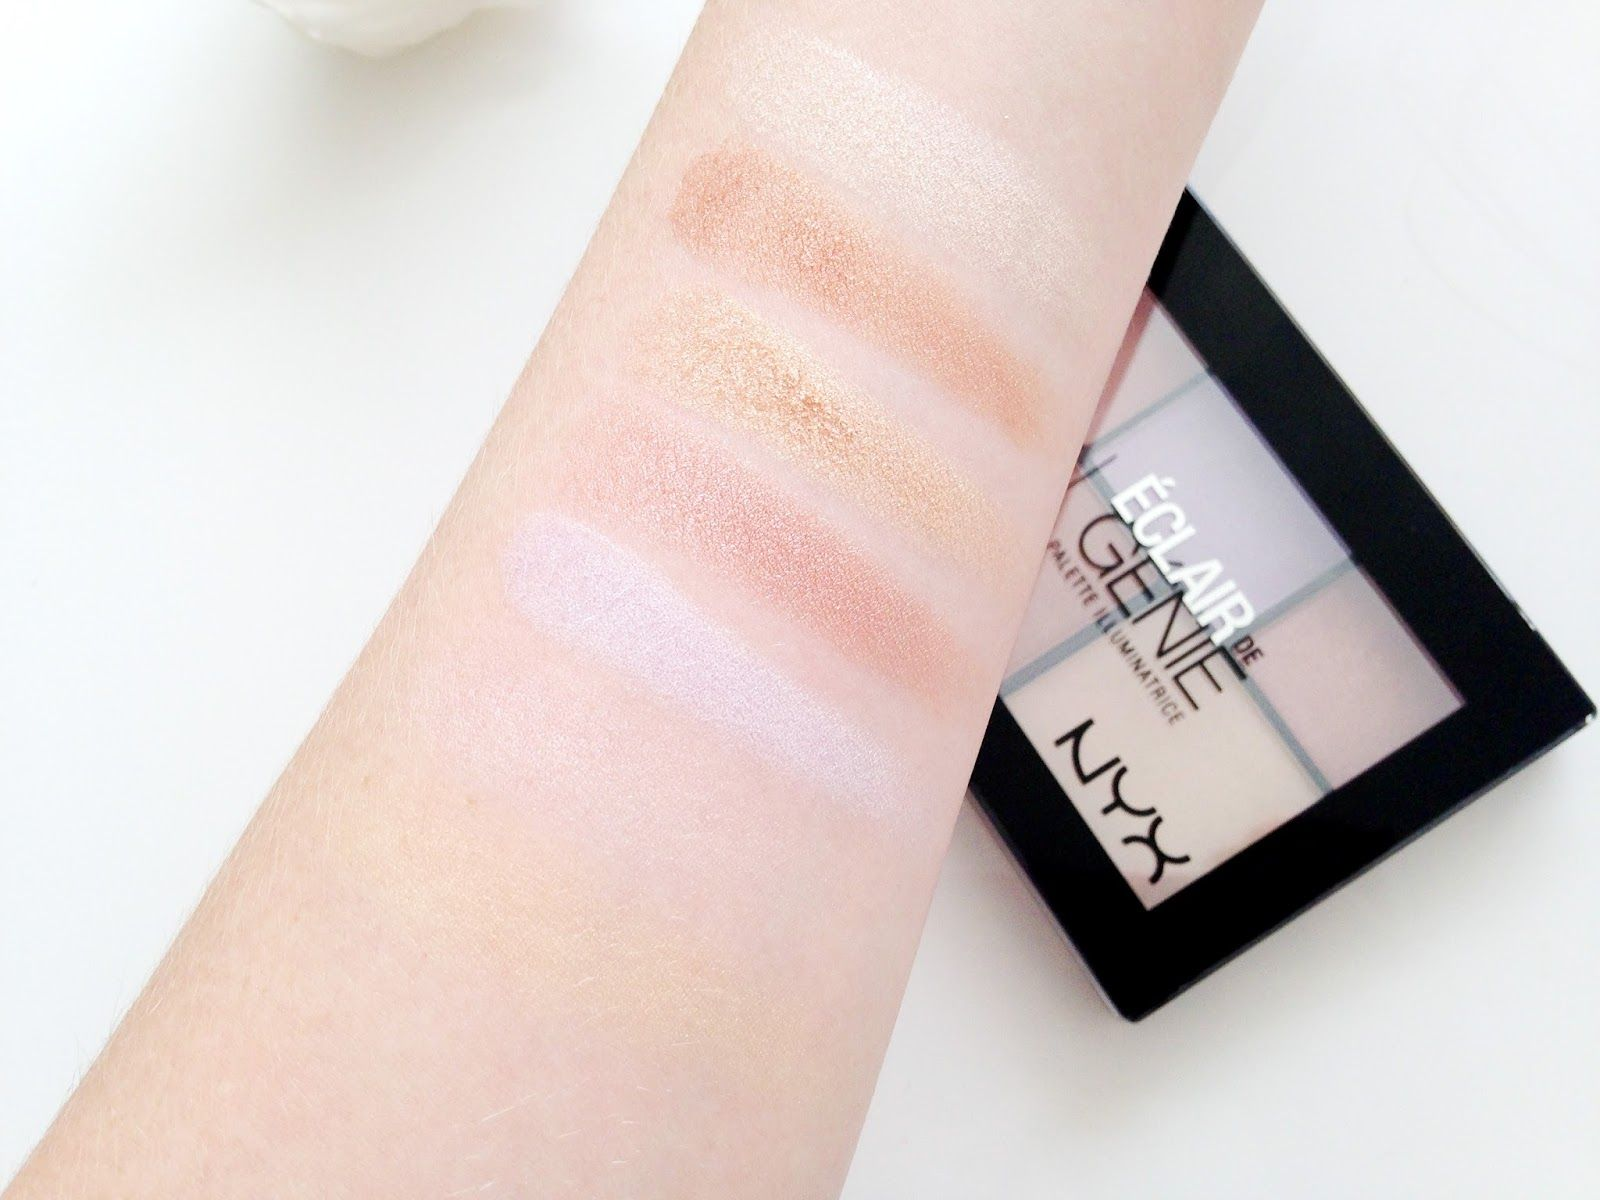 Strobe Of Genius Illuminating Palette by NYX Professional Makeup #22